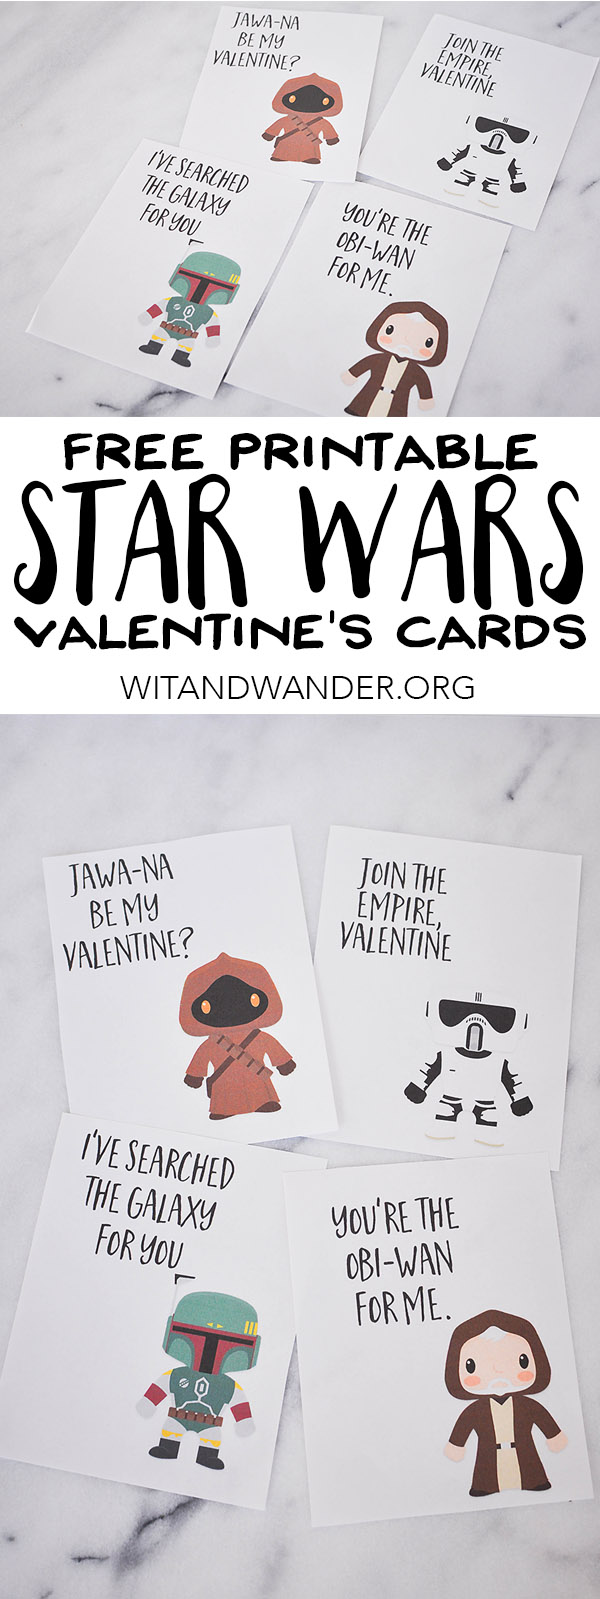 This is a photo of Adorable Star Wars Printable Cards